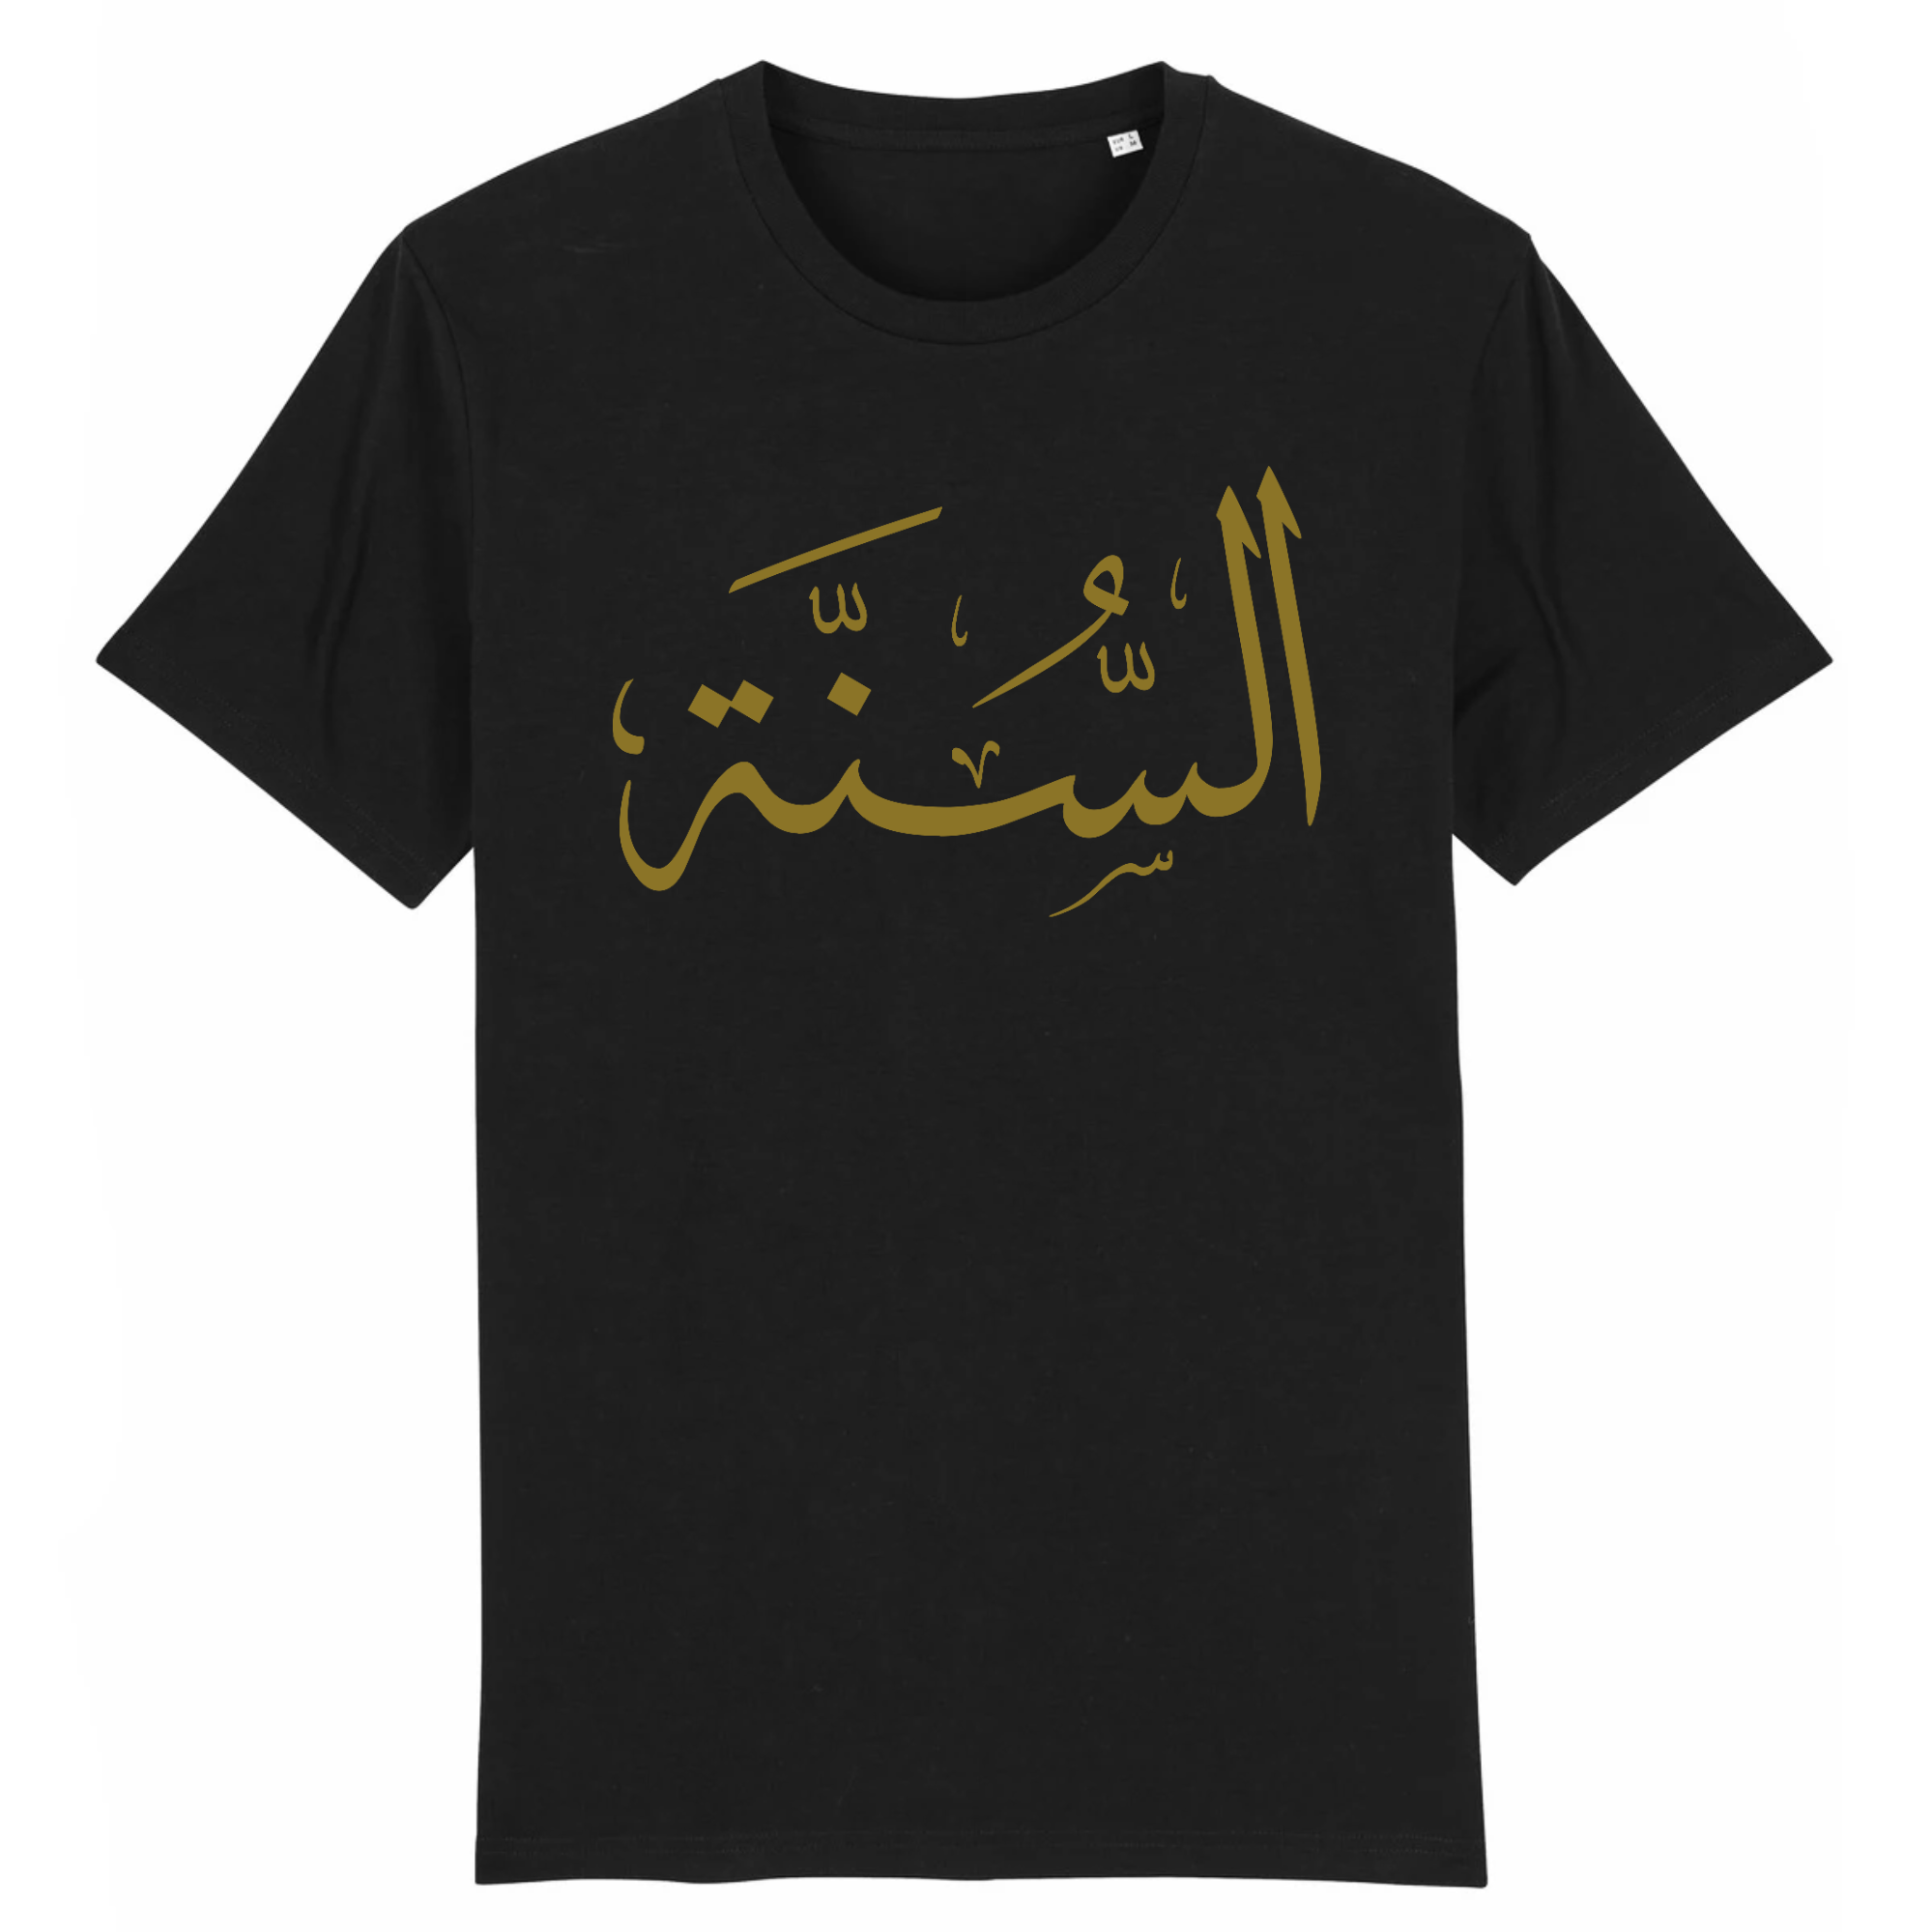 As-Sunna - Or - T-shirt Calligraphie Arabe